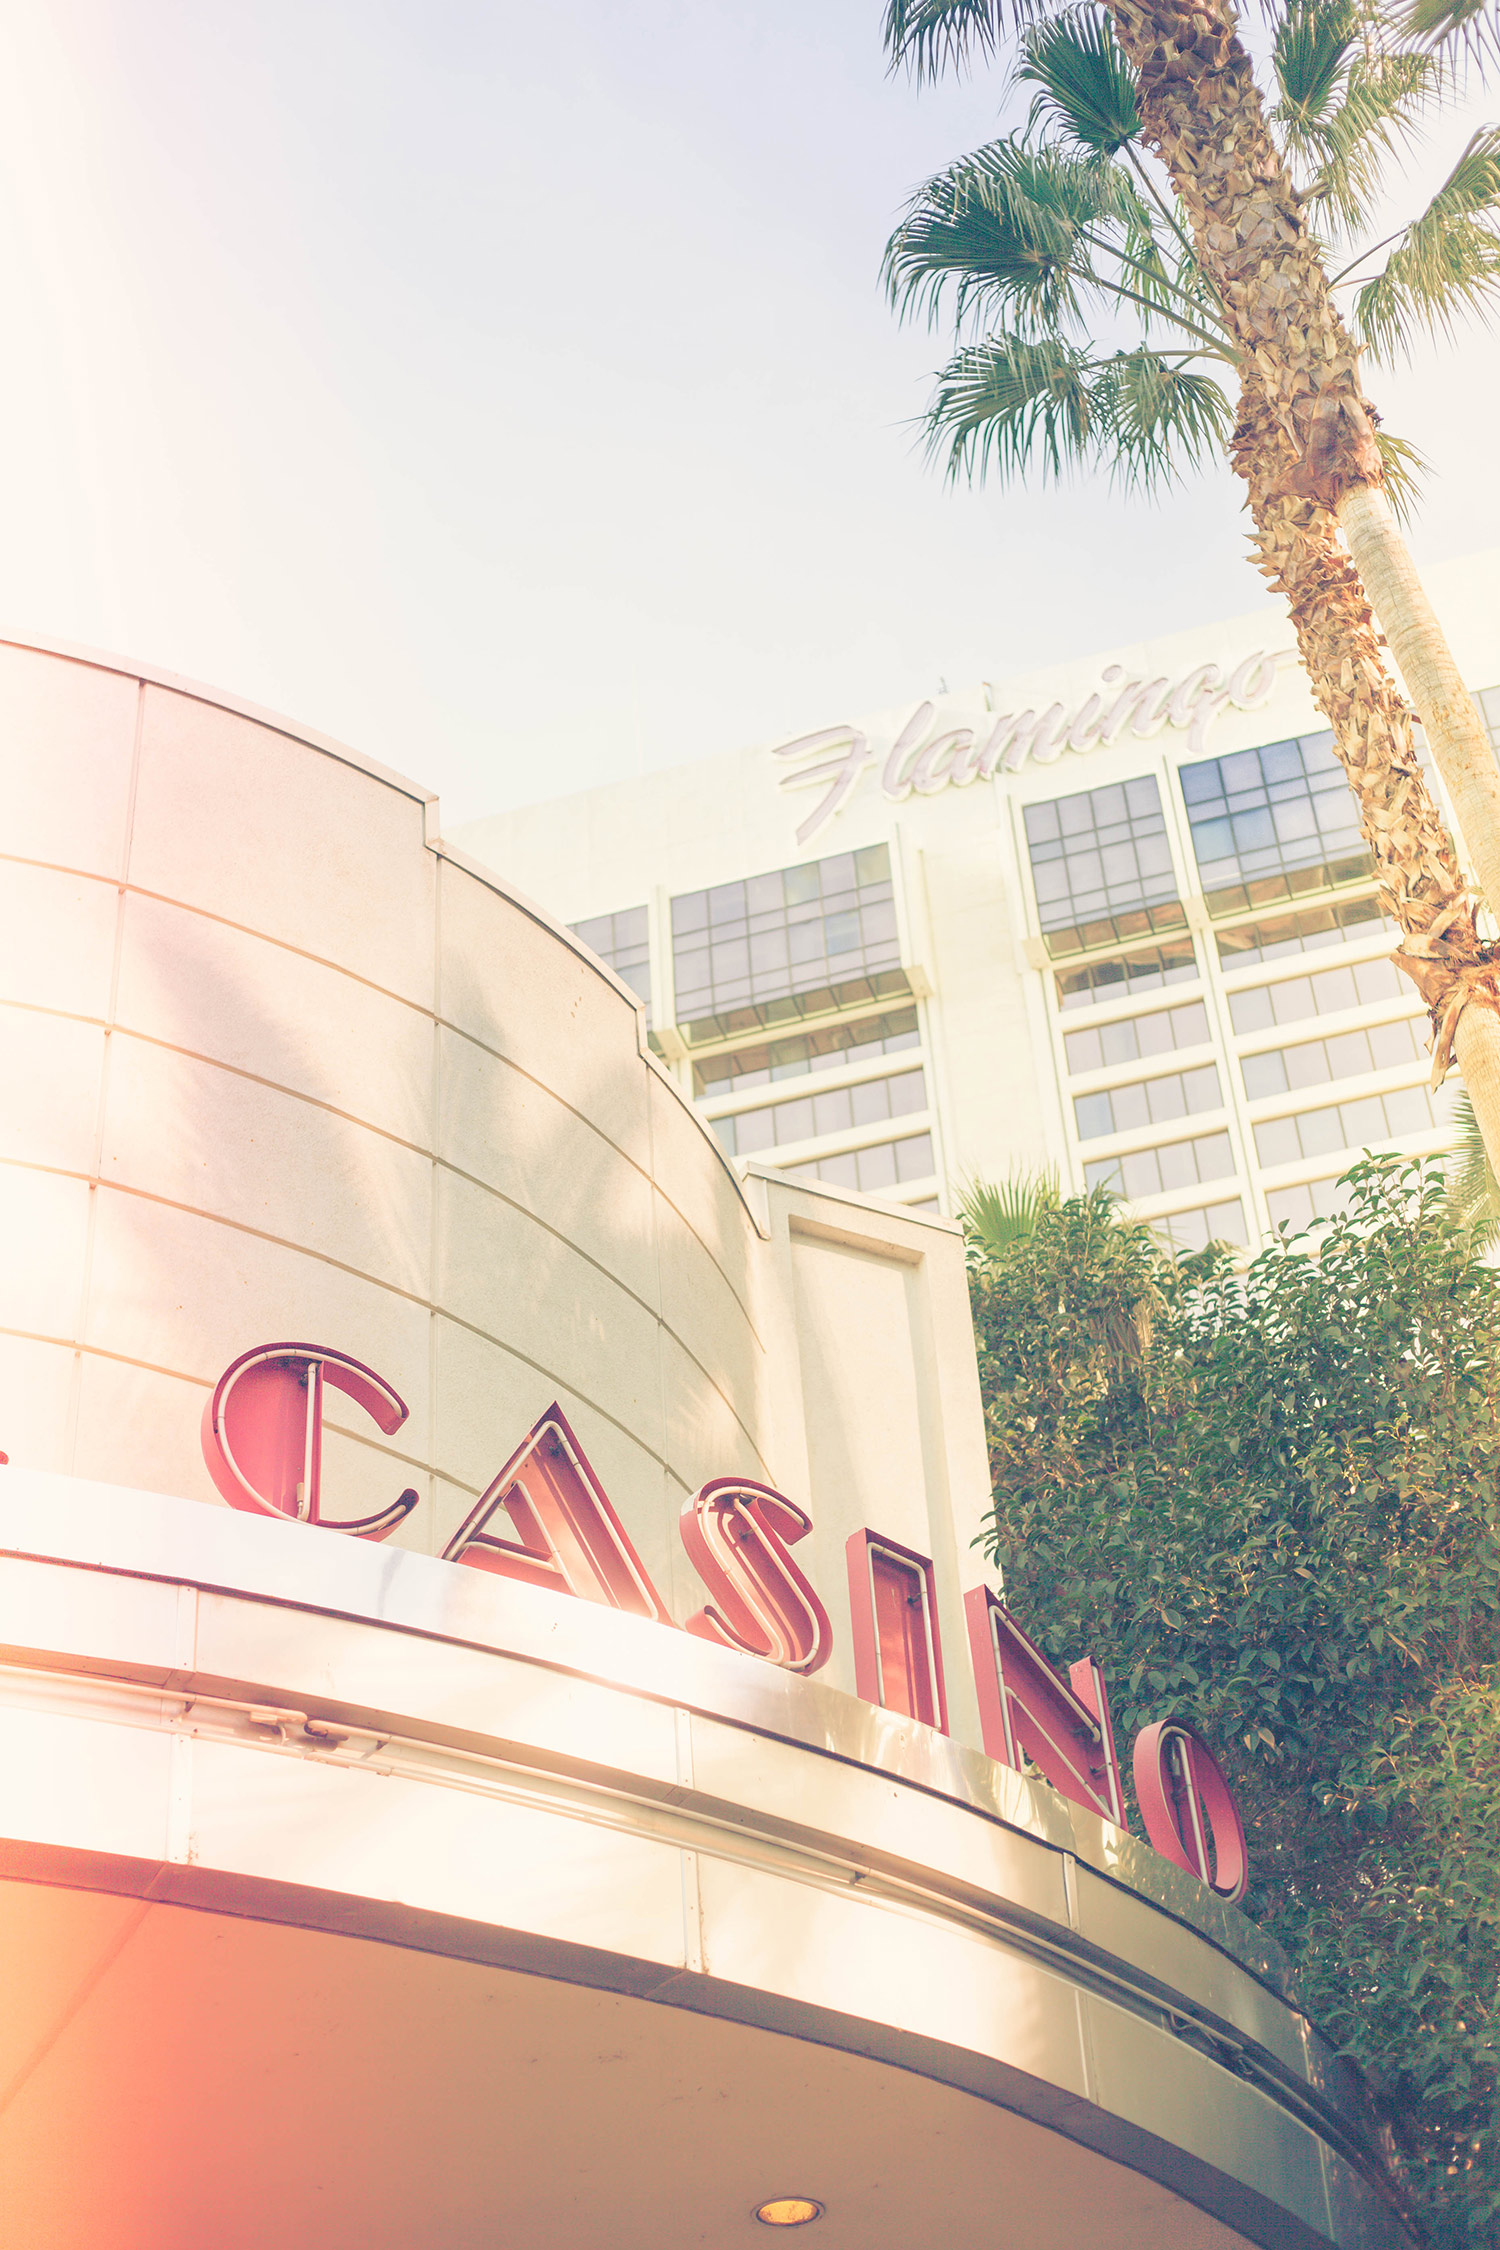 Viva Las Vegas: Chic Lightroom Presets & Brushes!